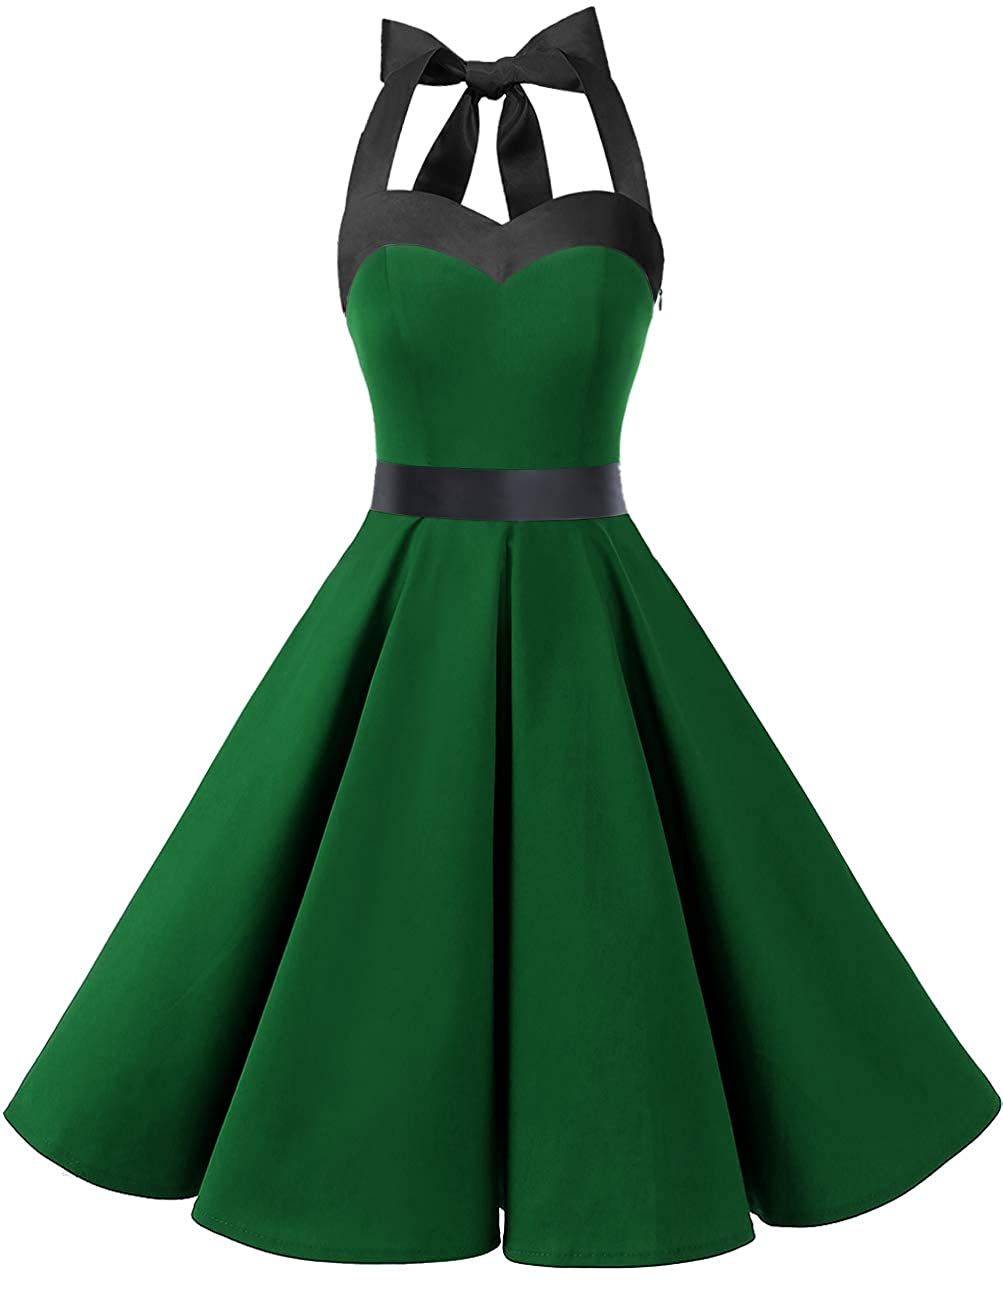 TALLA XS. Dresstells® Halter 50s Rockabilly Polka Dots Audrey Dress Retro Cocktail Dress Green Black XS